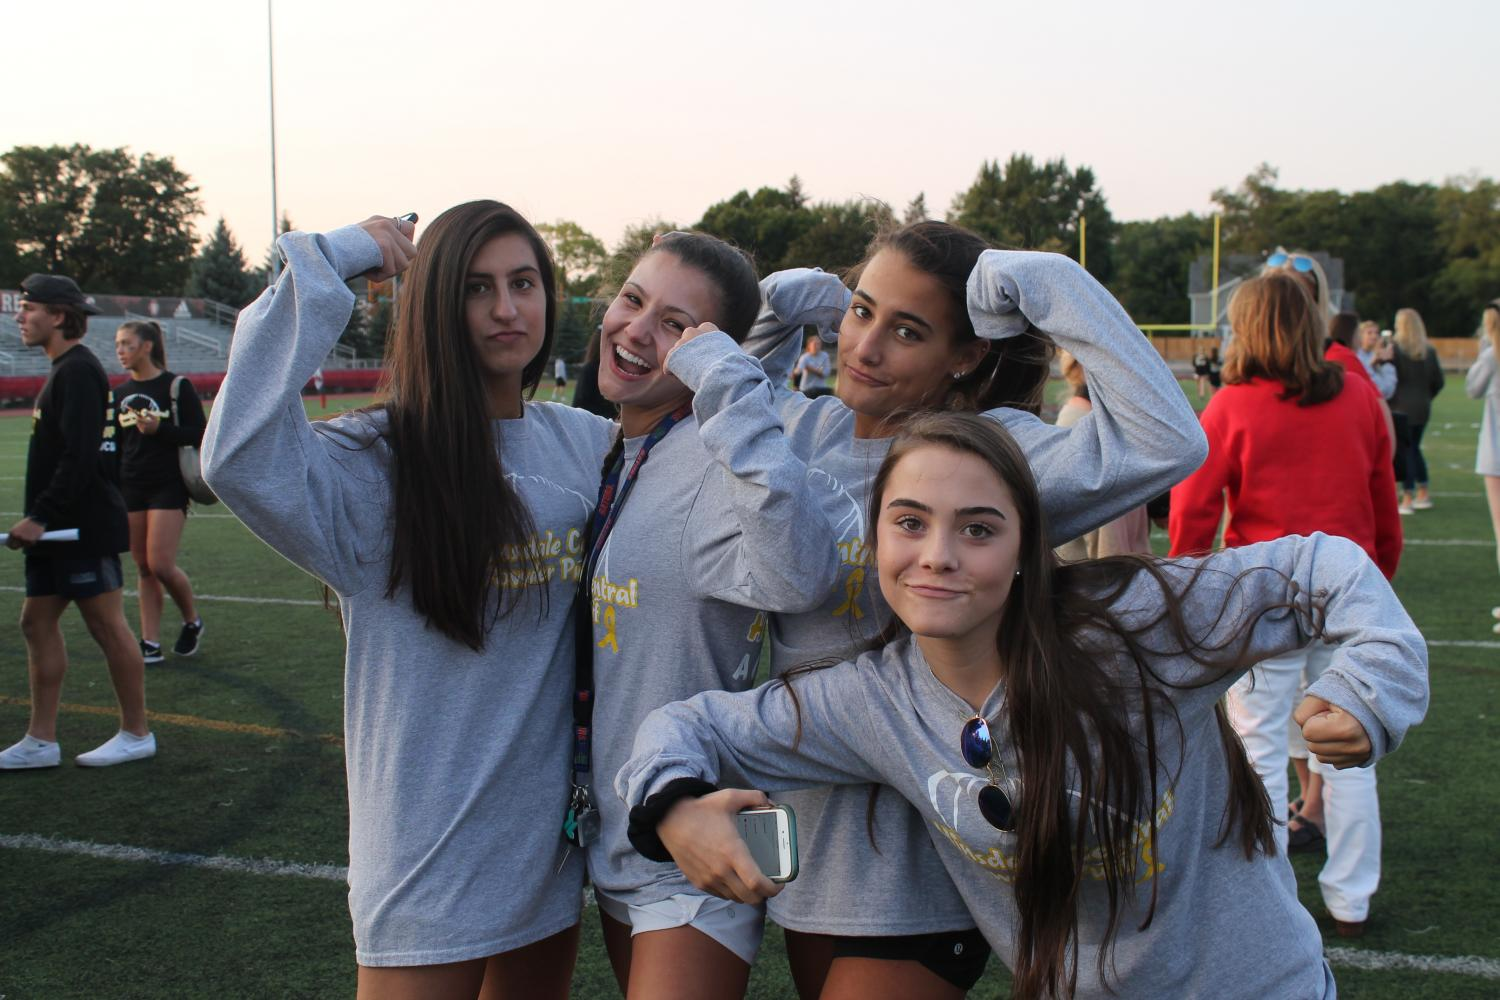 Although the seniors defeated the juniors, the class of 2019 was in high spirits throughout the game.